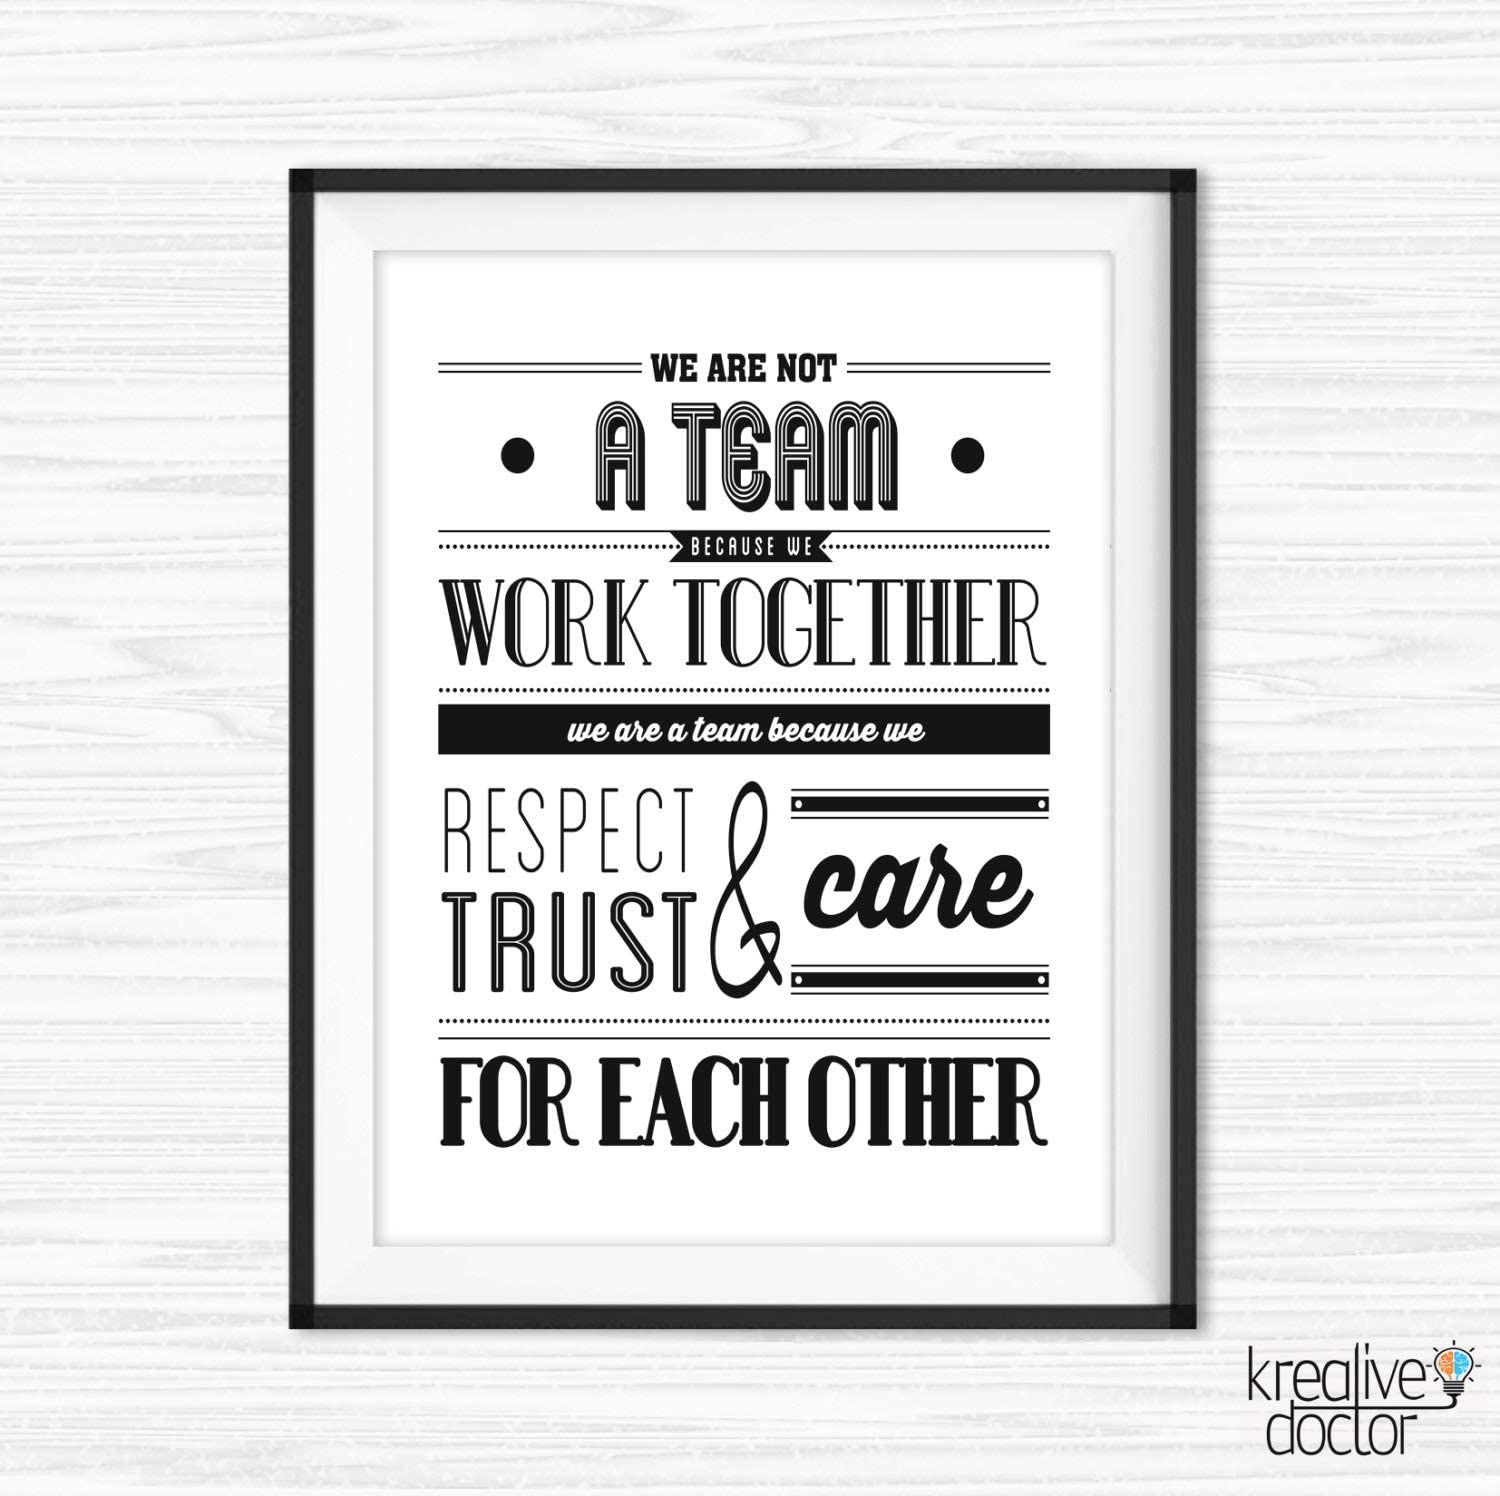 TimPrint Teamwork Quotes For Office Wall Art Success Quotes Motivational Wall Decor Inspirational Quote For Work Office Wall Quotes Framed print